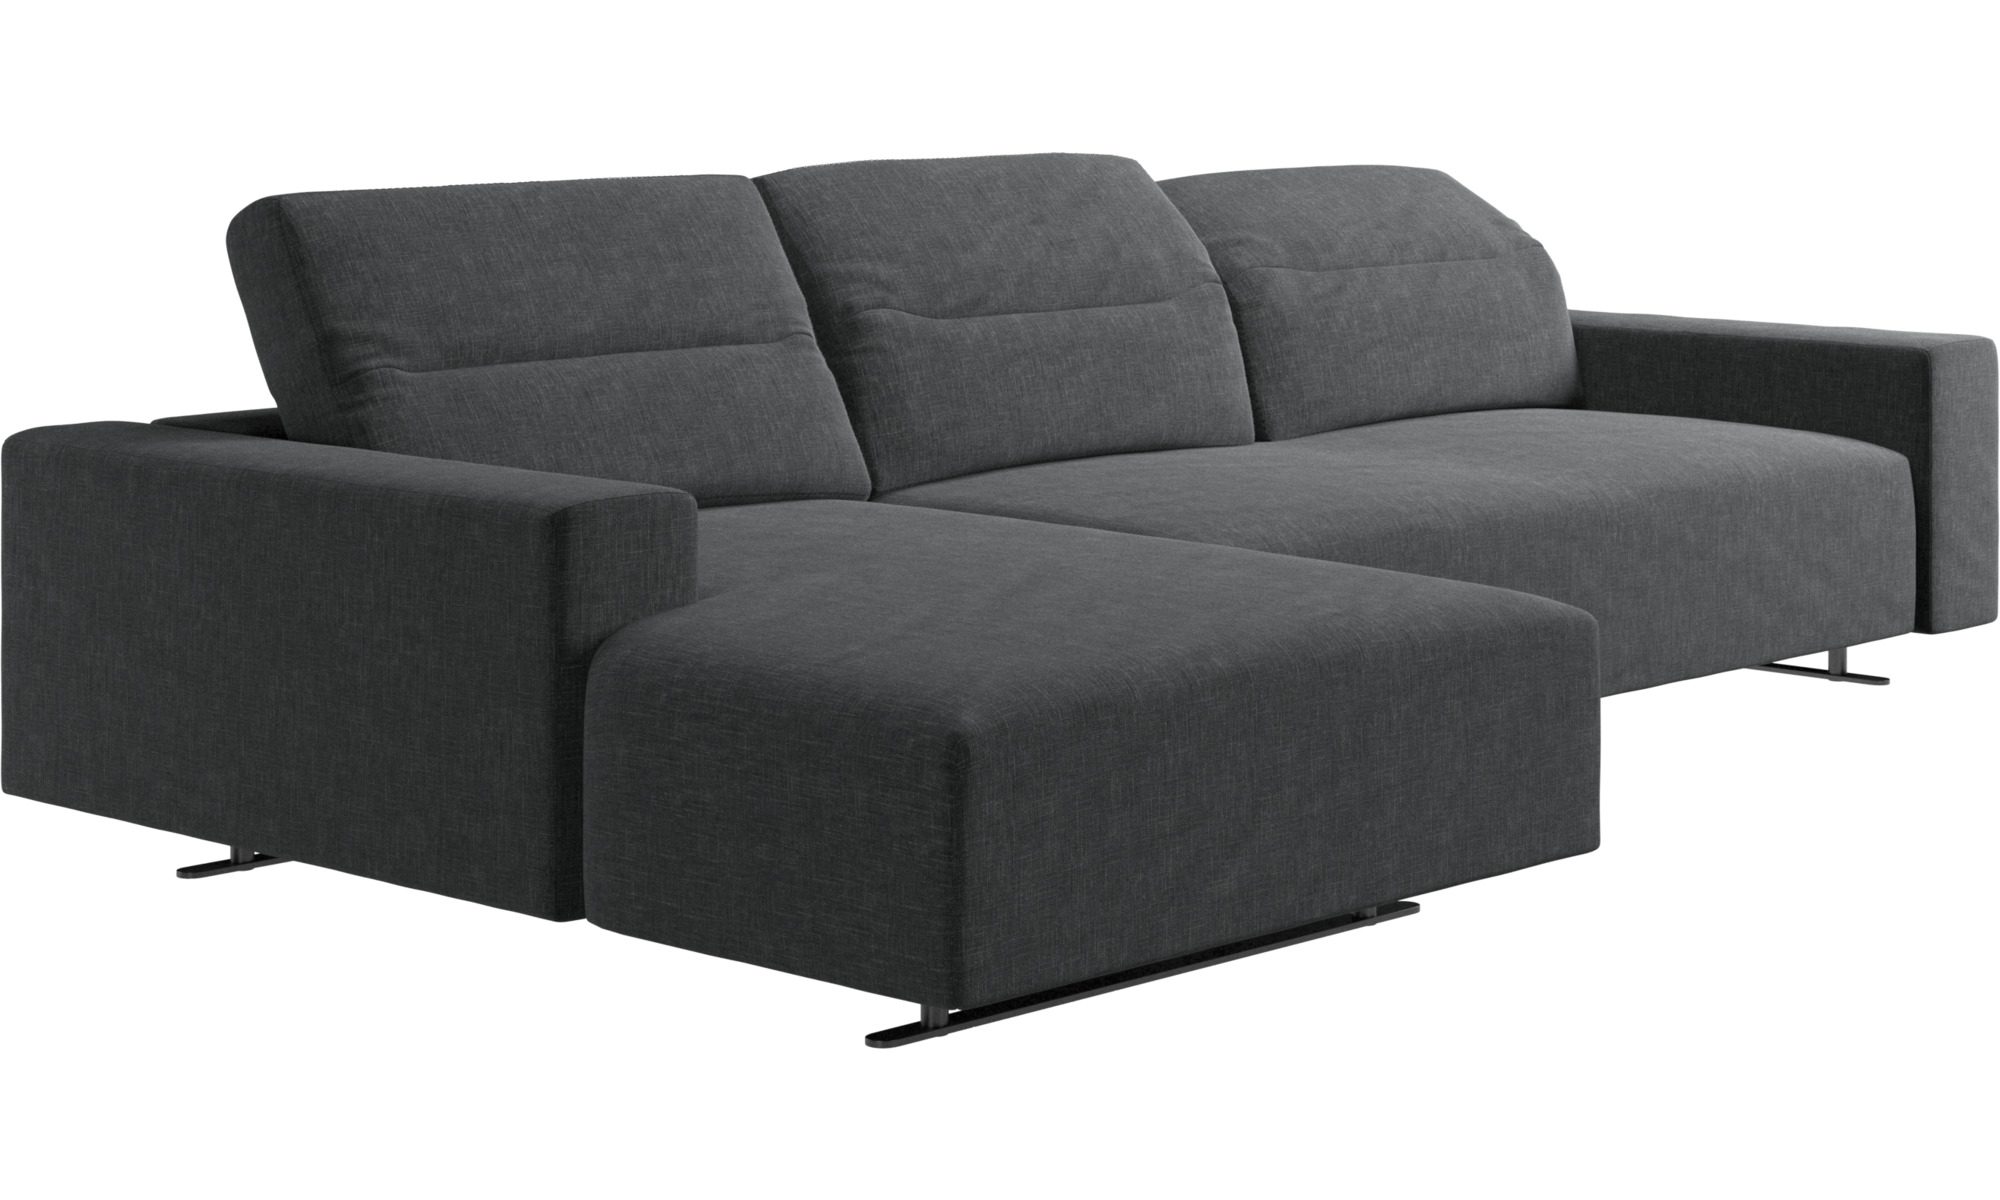 Picture of: Chaise Lounge Sofas Hampton Sofa With Adjustable Back And Resting Unit Left Side Storage Right Side Boconcept